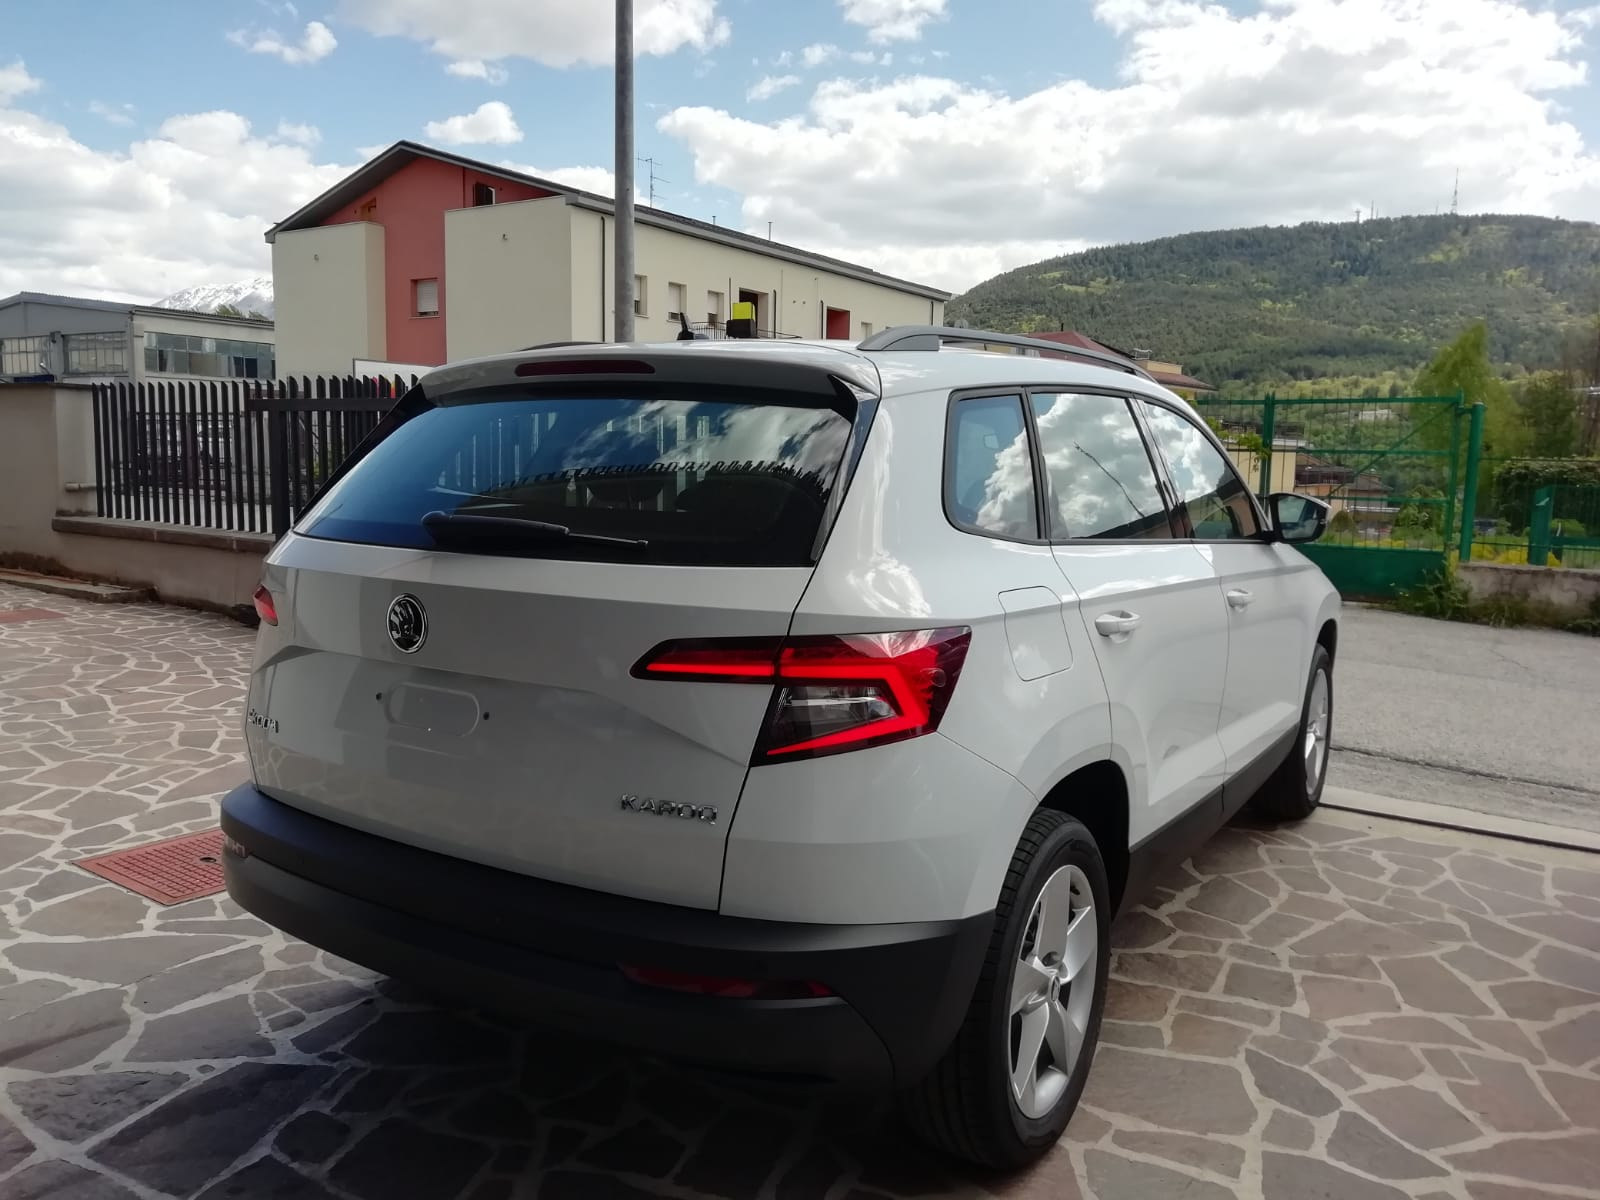 Skoda Karoq 1.6 TDI Executive